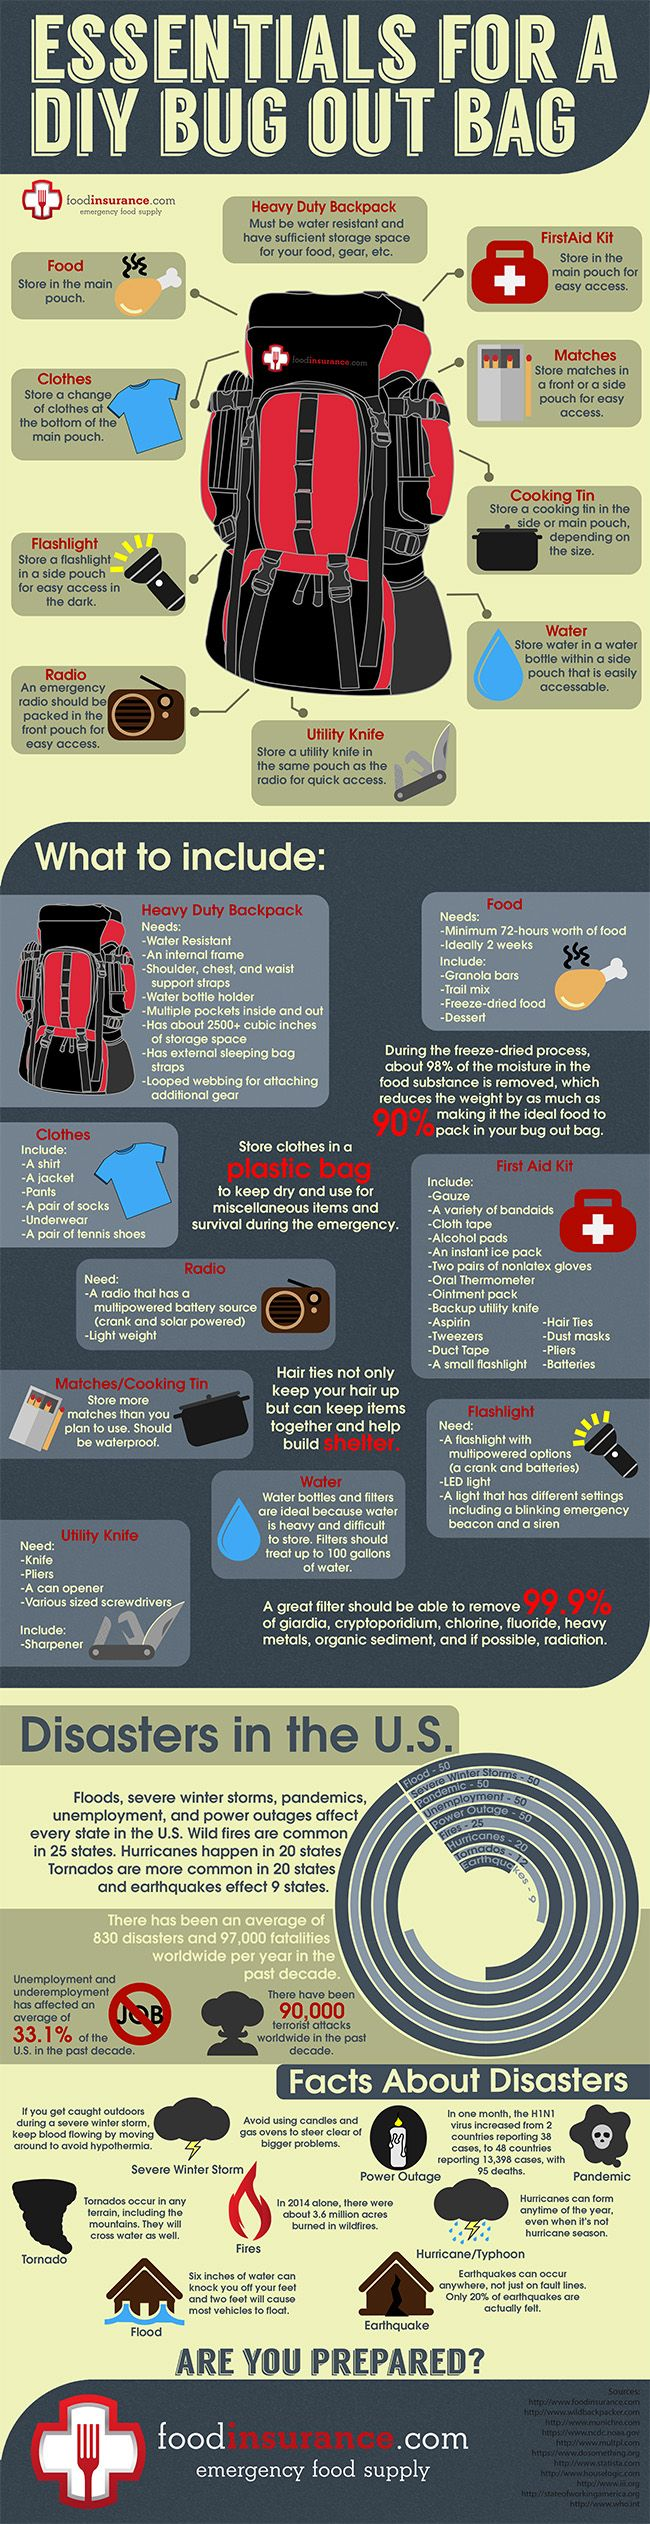 DIY Bug Out Bag Infographic